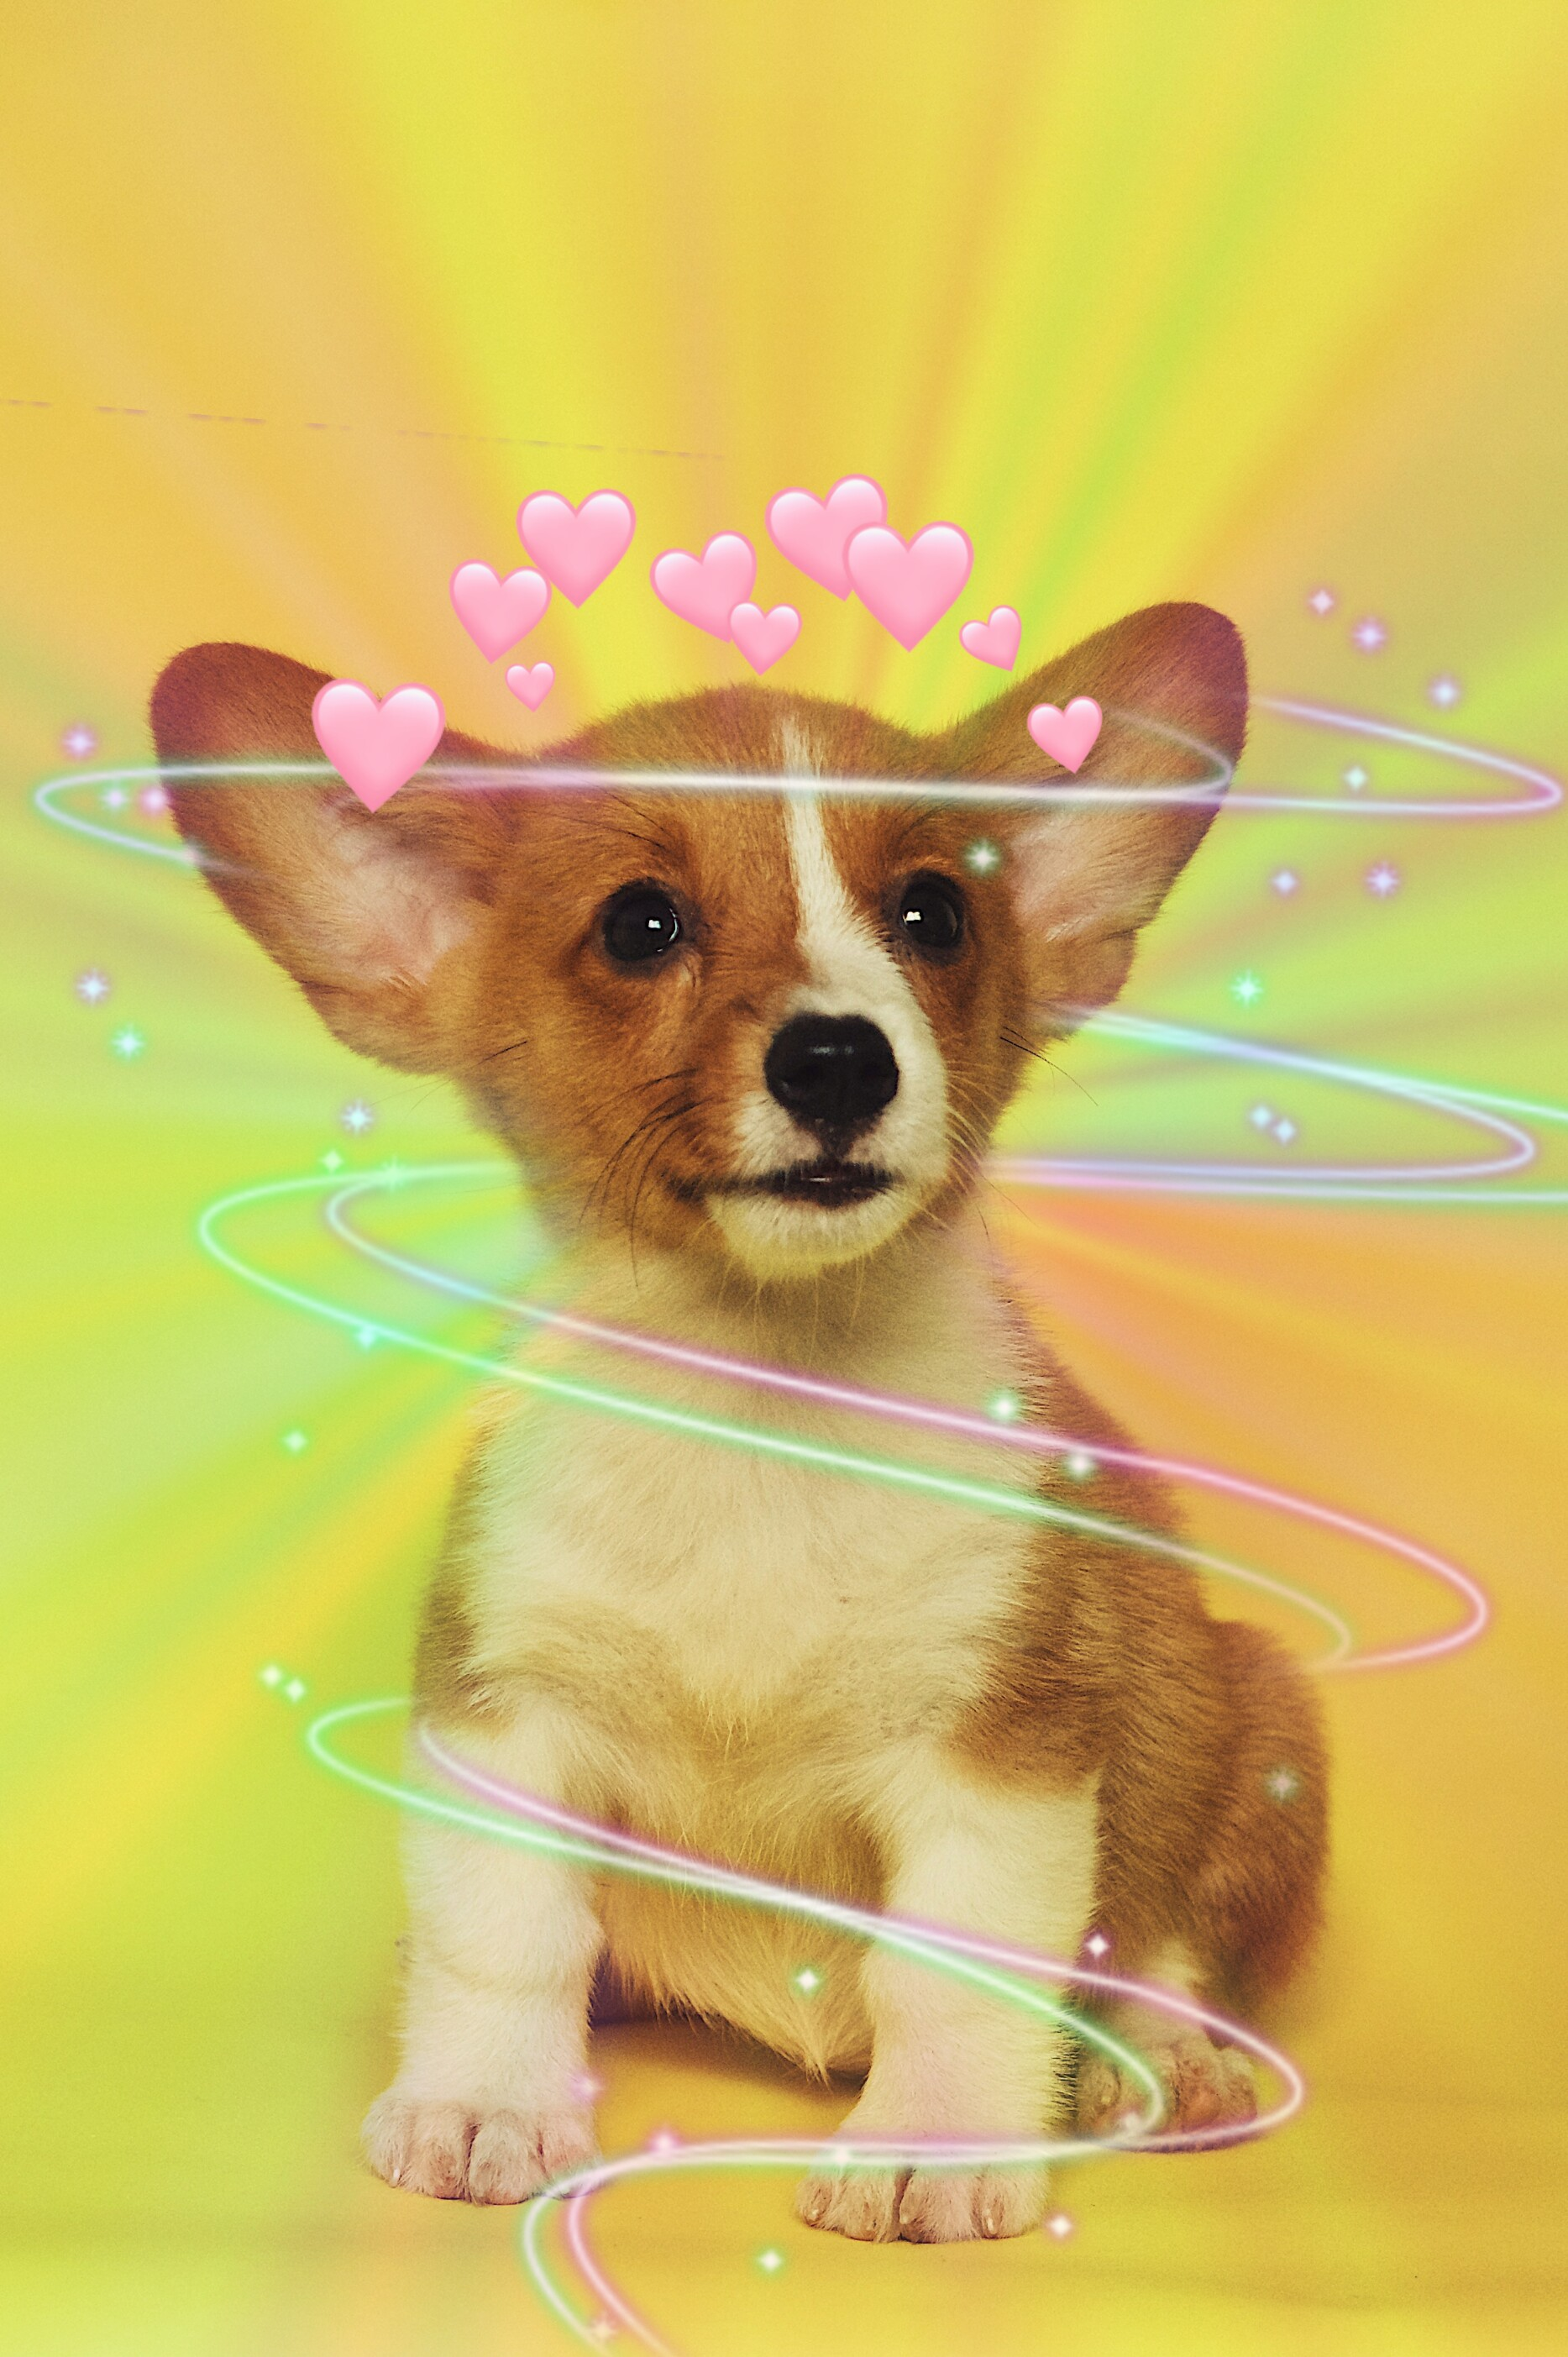 freetoedit challenge like sweet cute dog edit vote happ